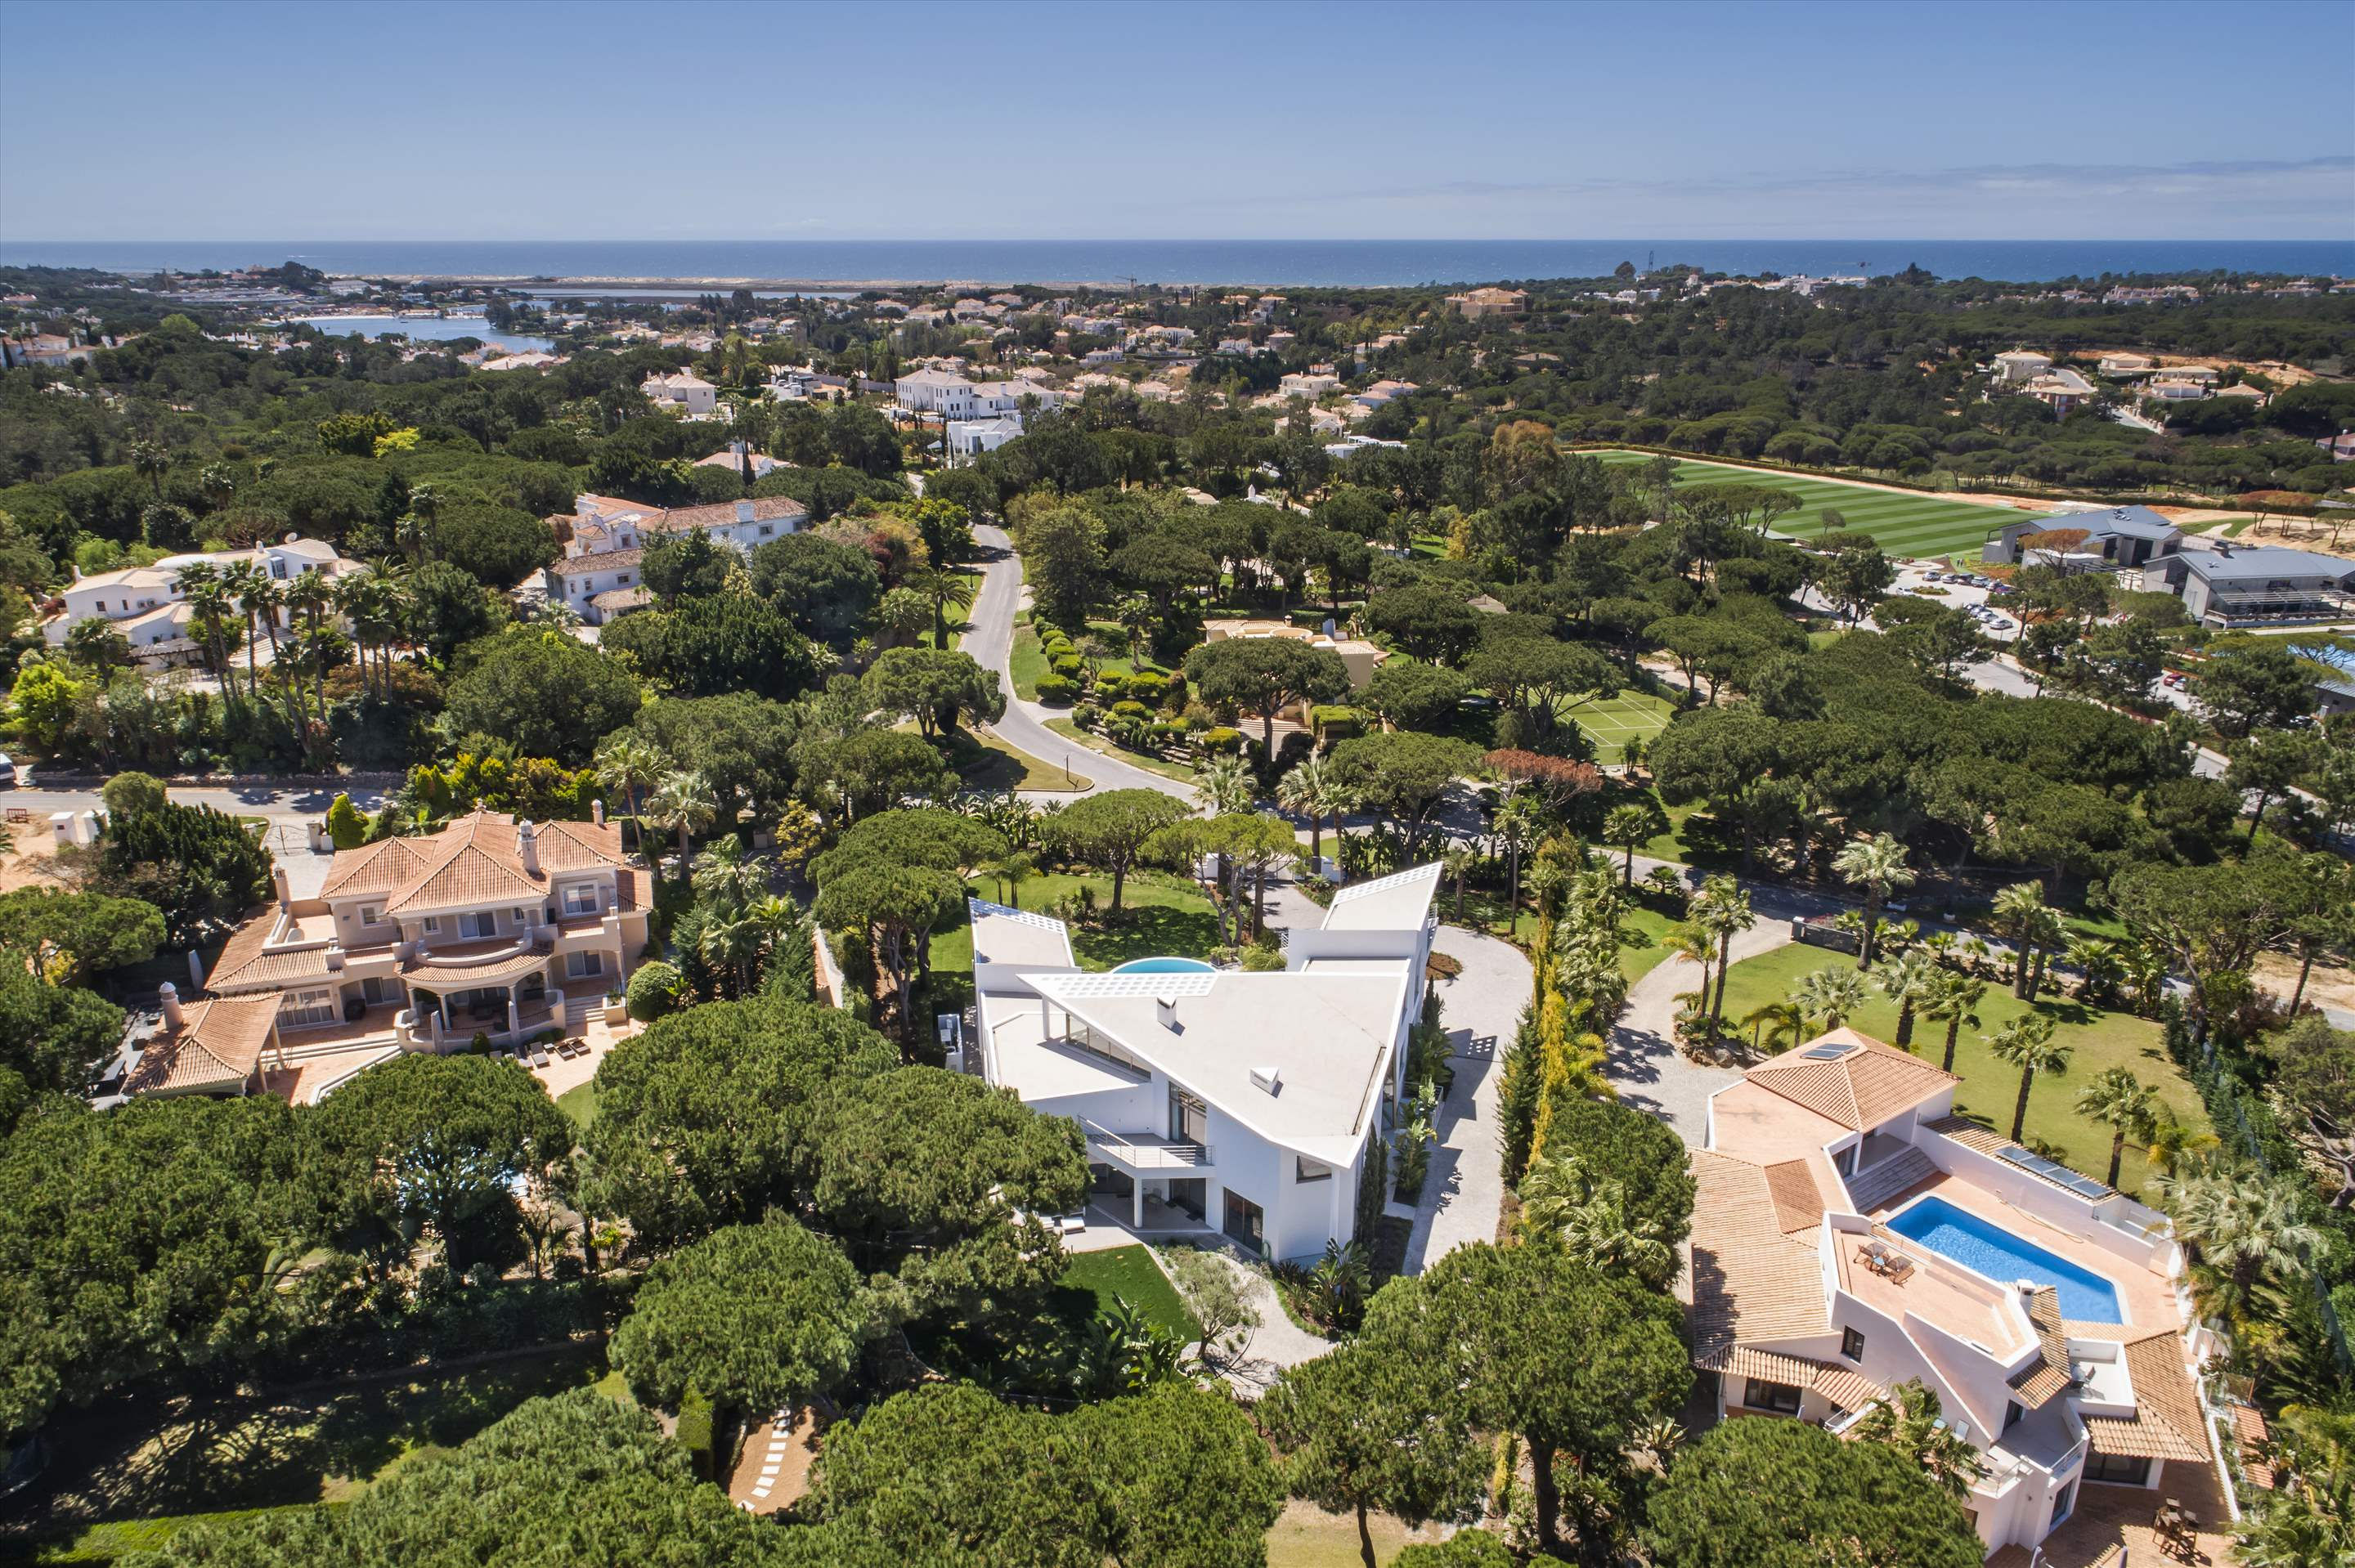 Villa Palm, 6 bedroom villa in Quinta do Lago, Algarve Photo #25